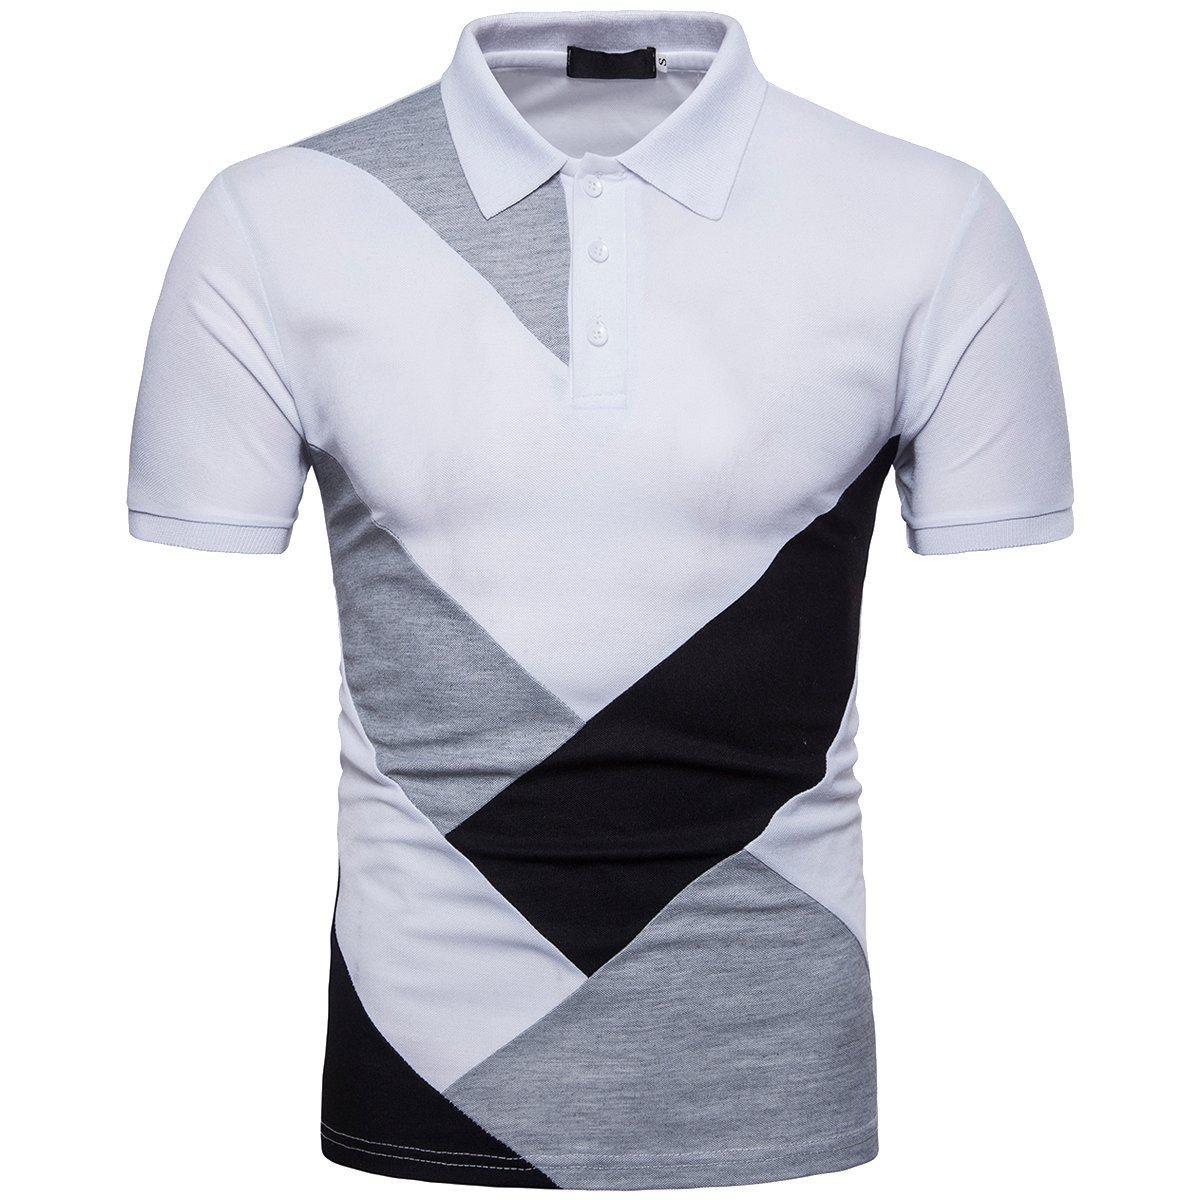 Cottory Mens Fit Slim Spell Color 3 Button Down Sport Polo Shirt